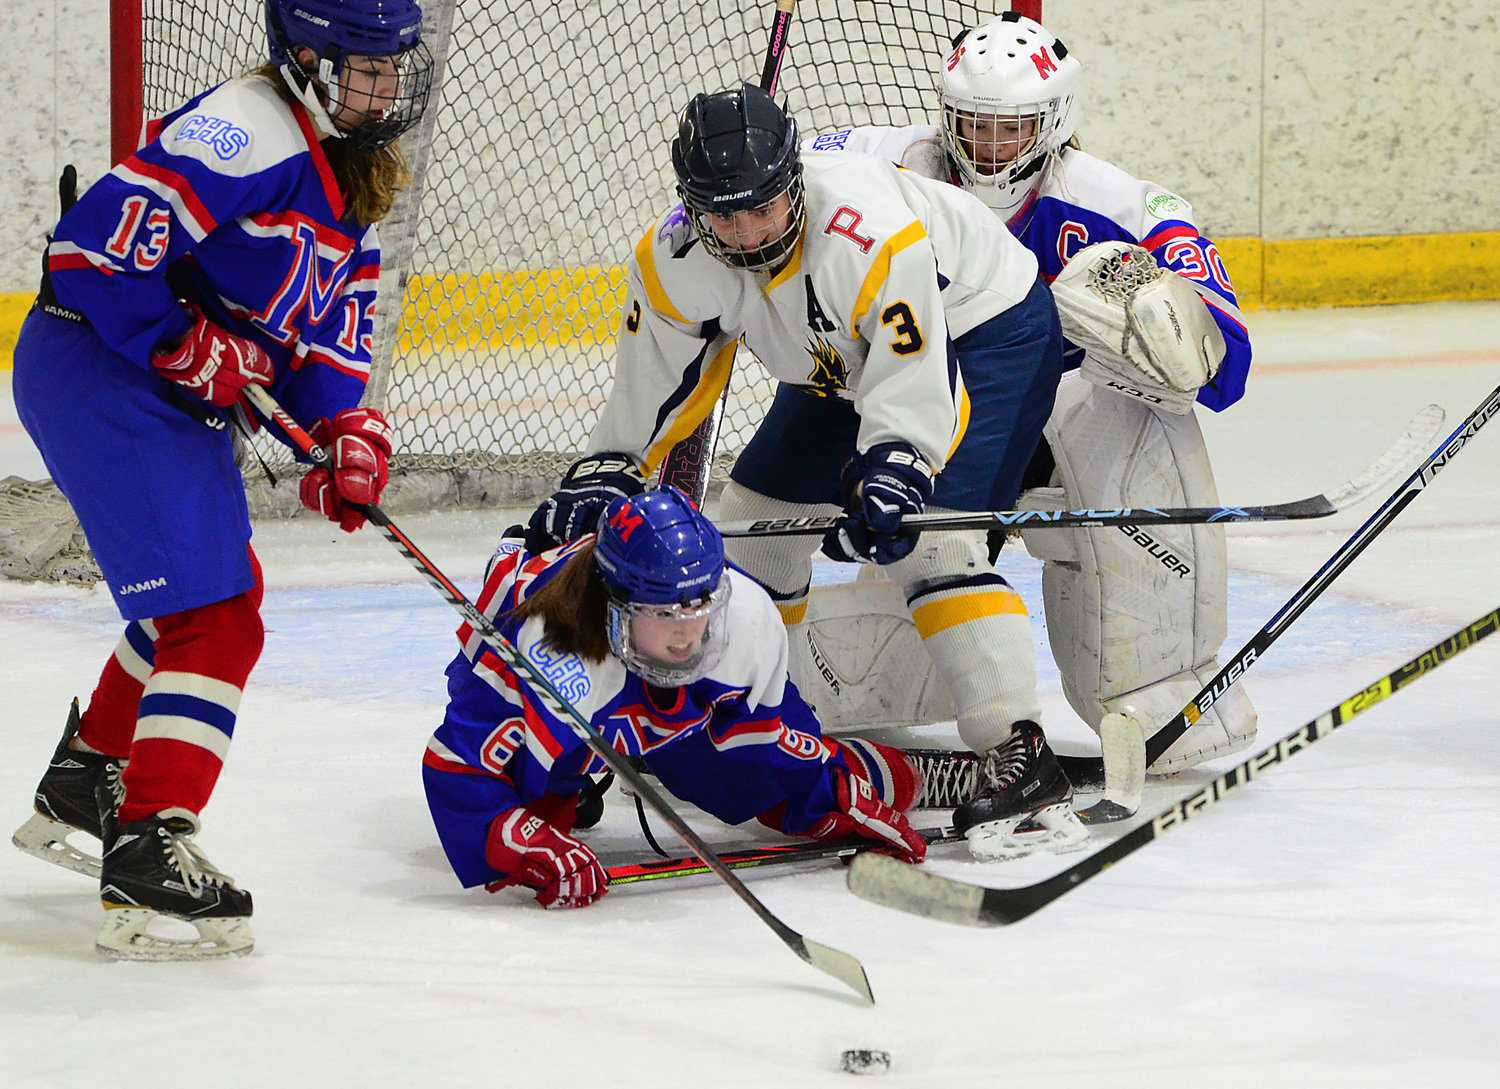 Co-captain and first line winger Maddie Cornell (center) knocks down a Mount defender while chasing a rebound.